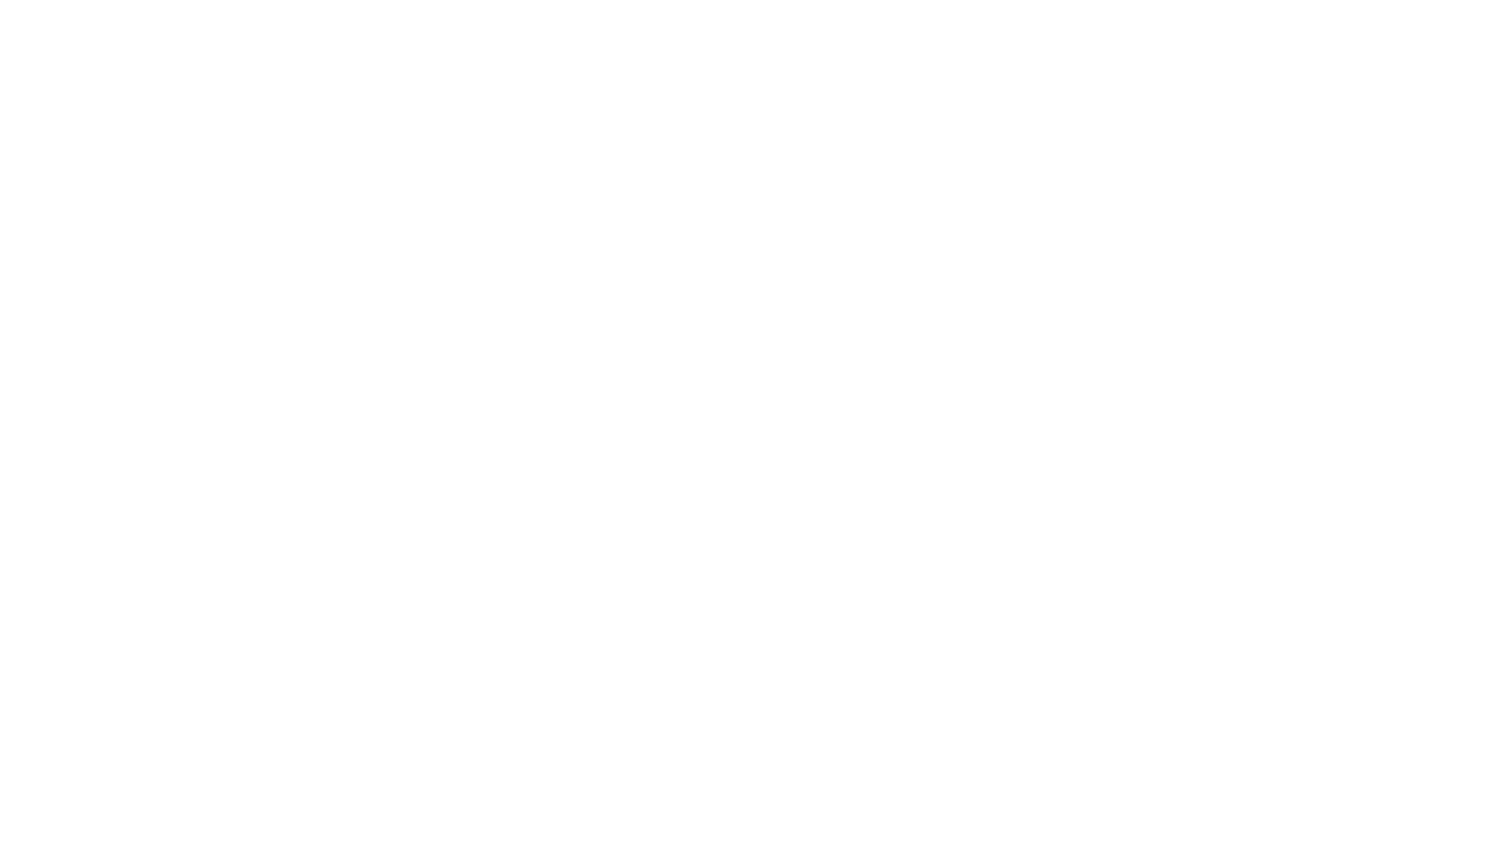 Oak Creek Senior Portrait Photographer - Victor Rueda Photography